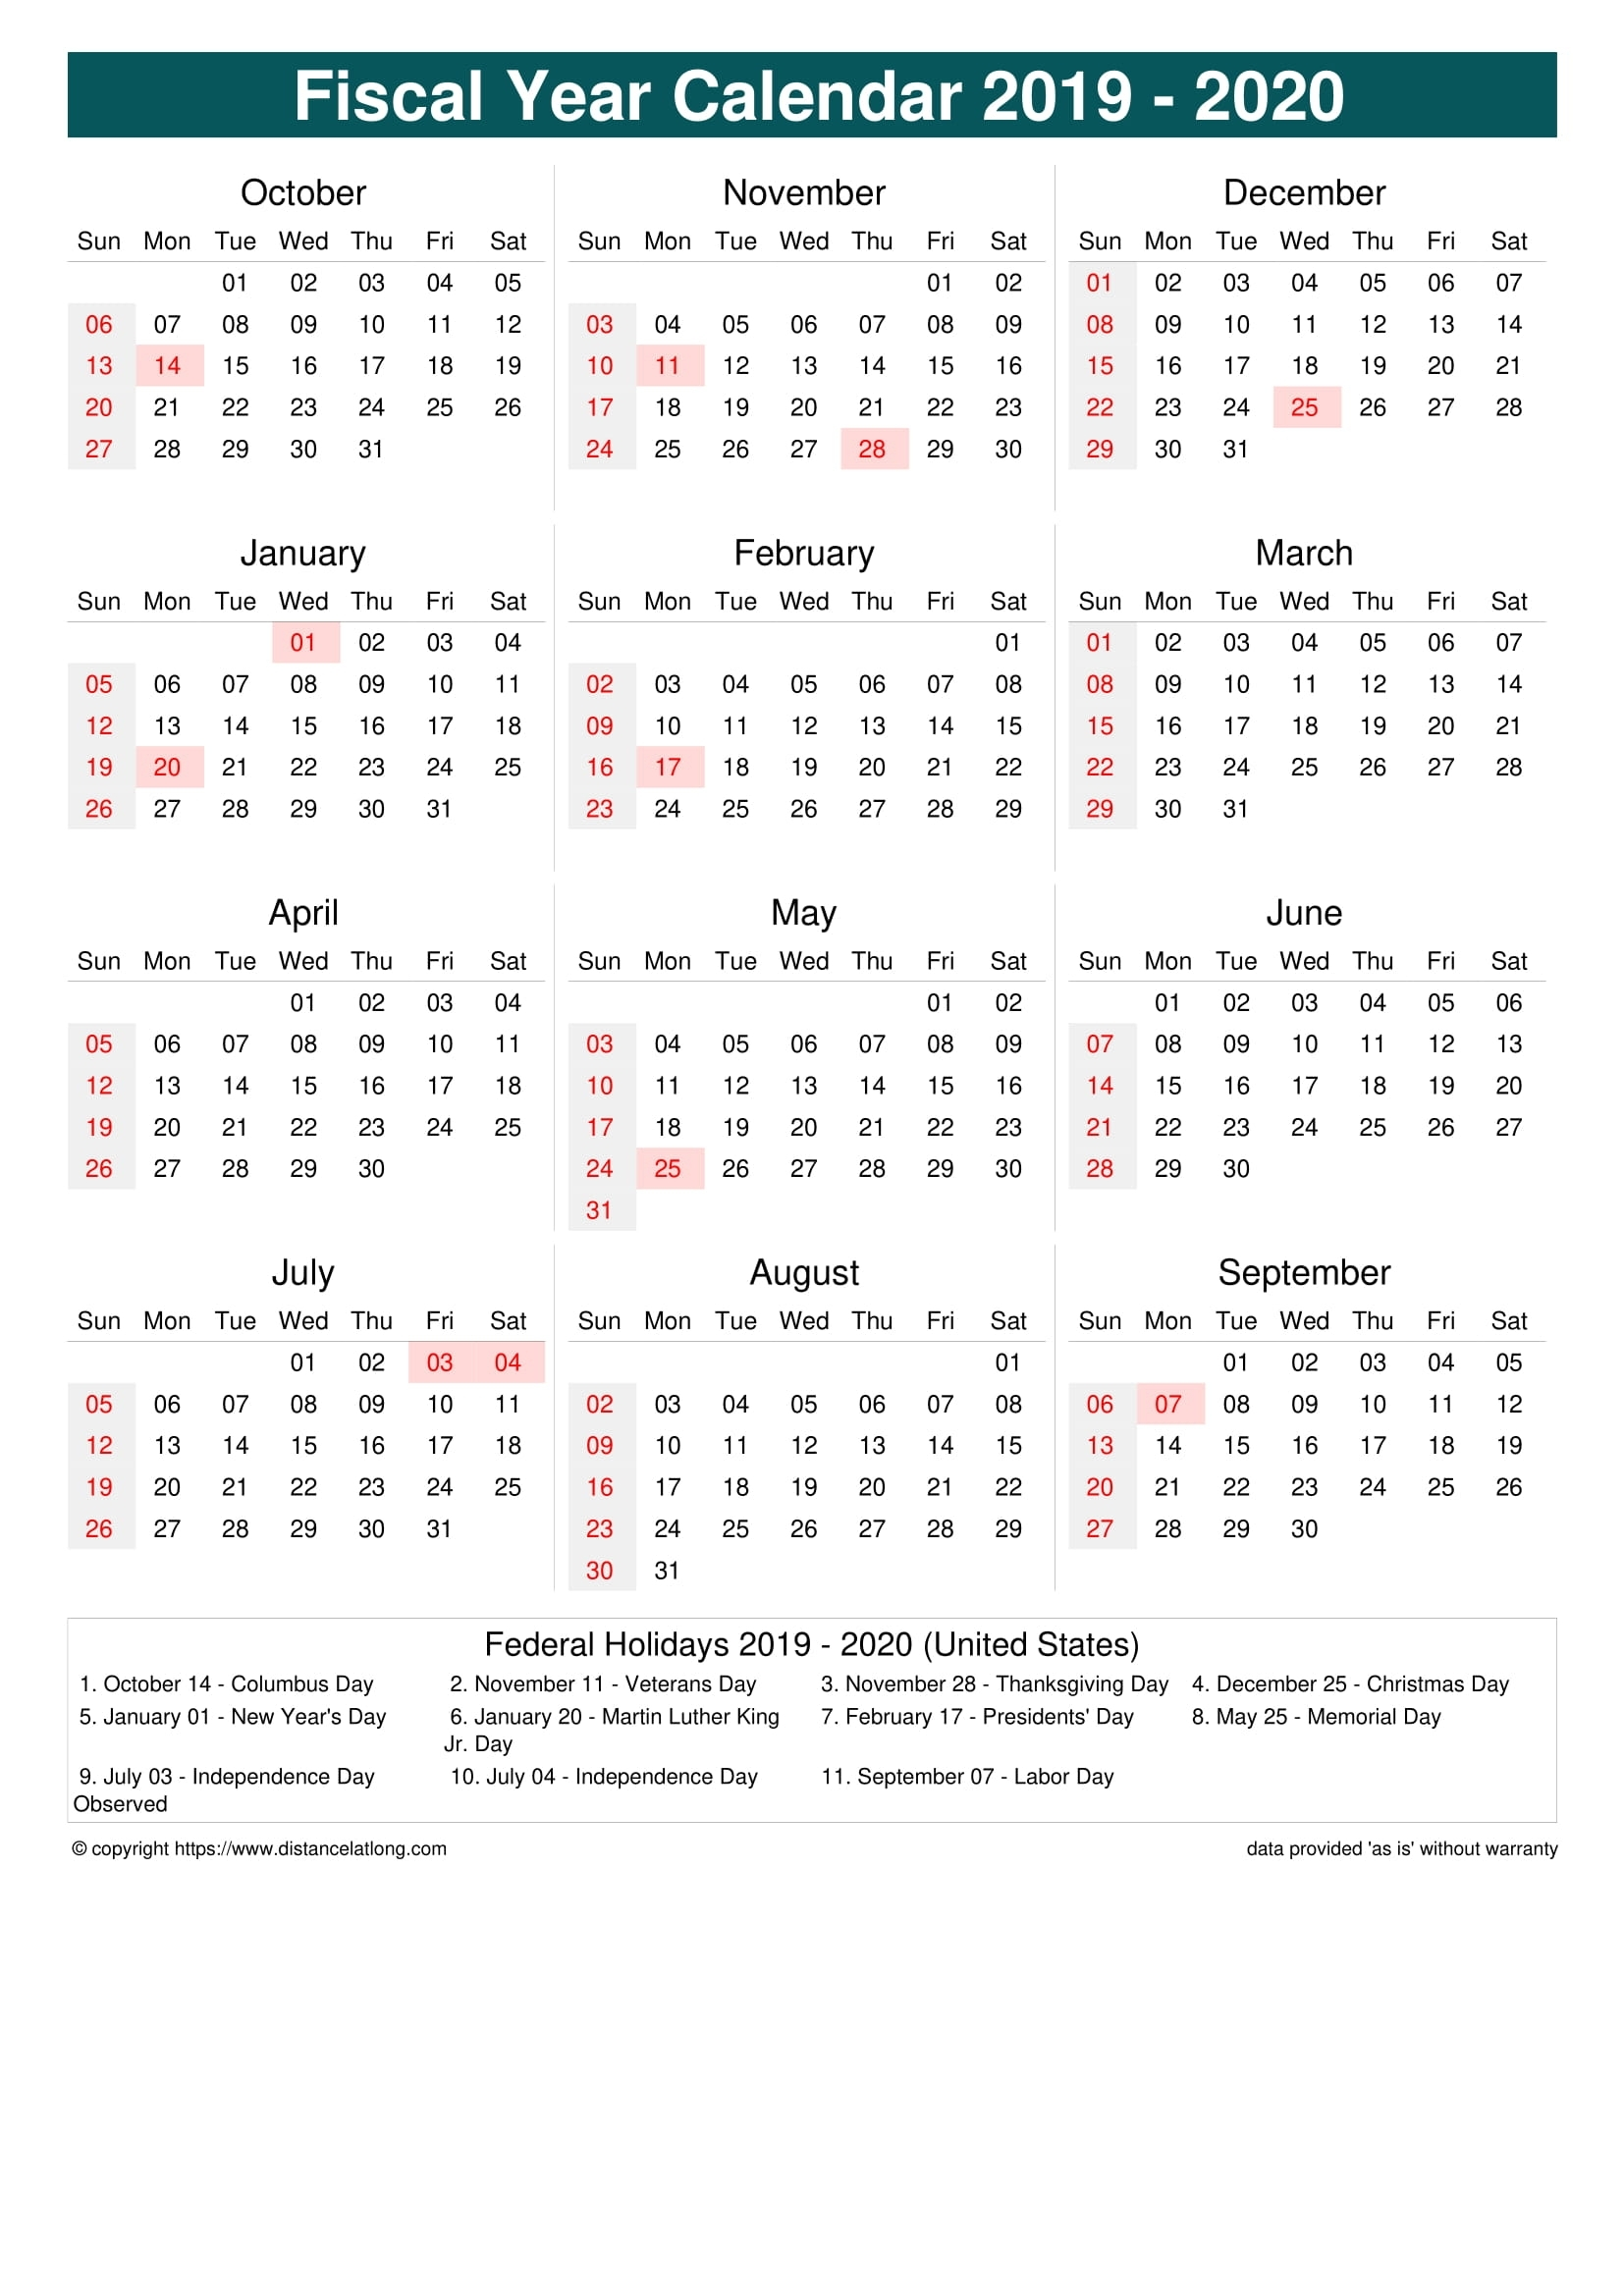 Fiscal Year 2019-2020 Calendar Templates, Free Printable regarding Calendar Sunday To Saturday 2020